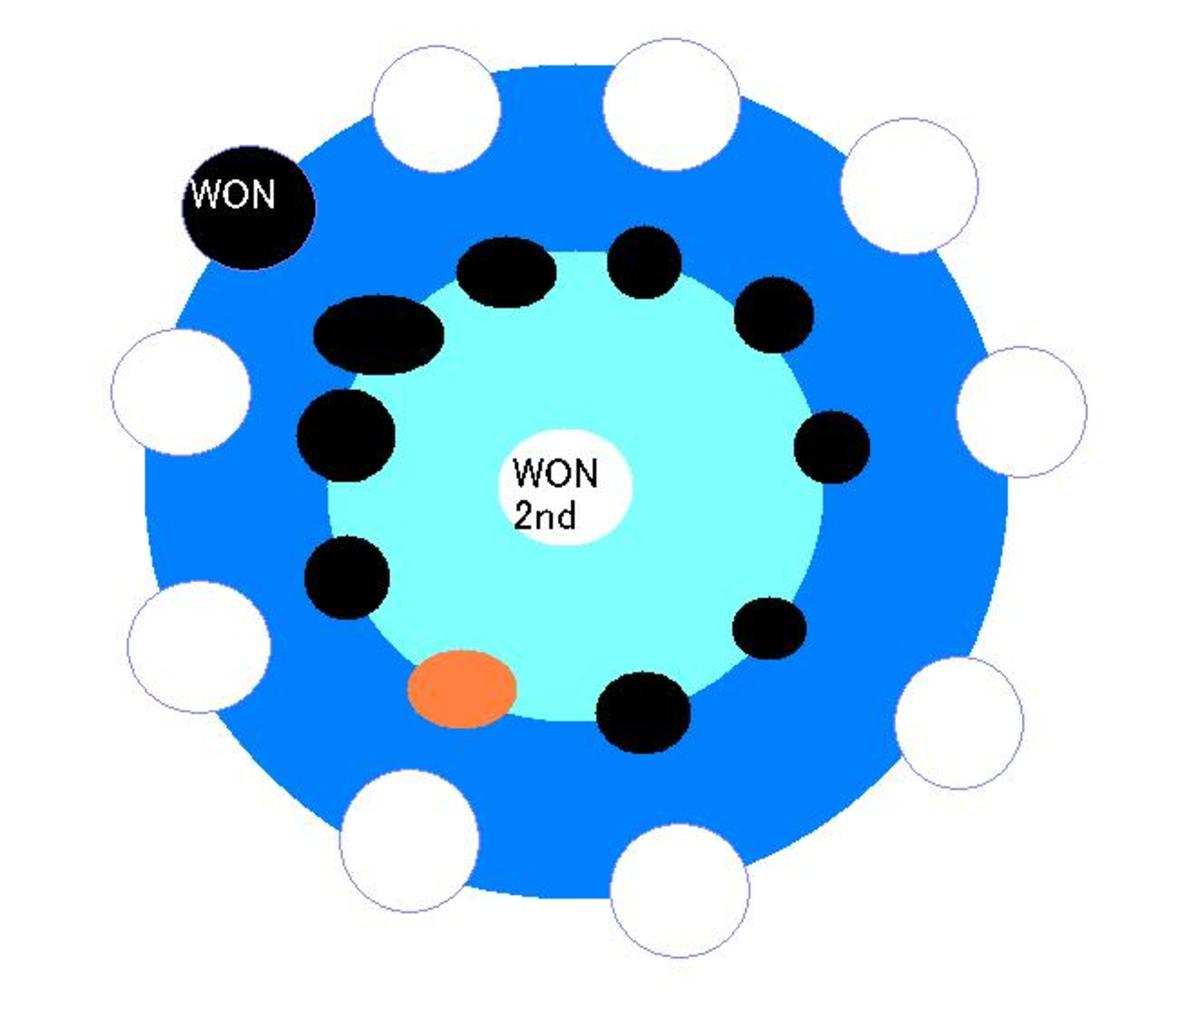 Now another person has won and is in the center, circles have reversed again, and the old winner took the new winner's place.